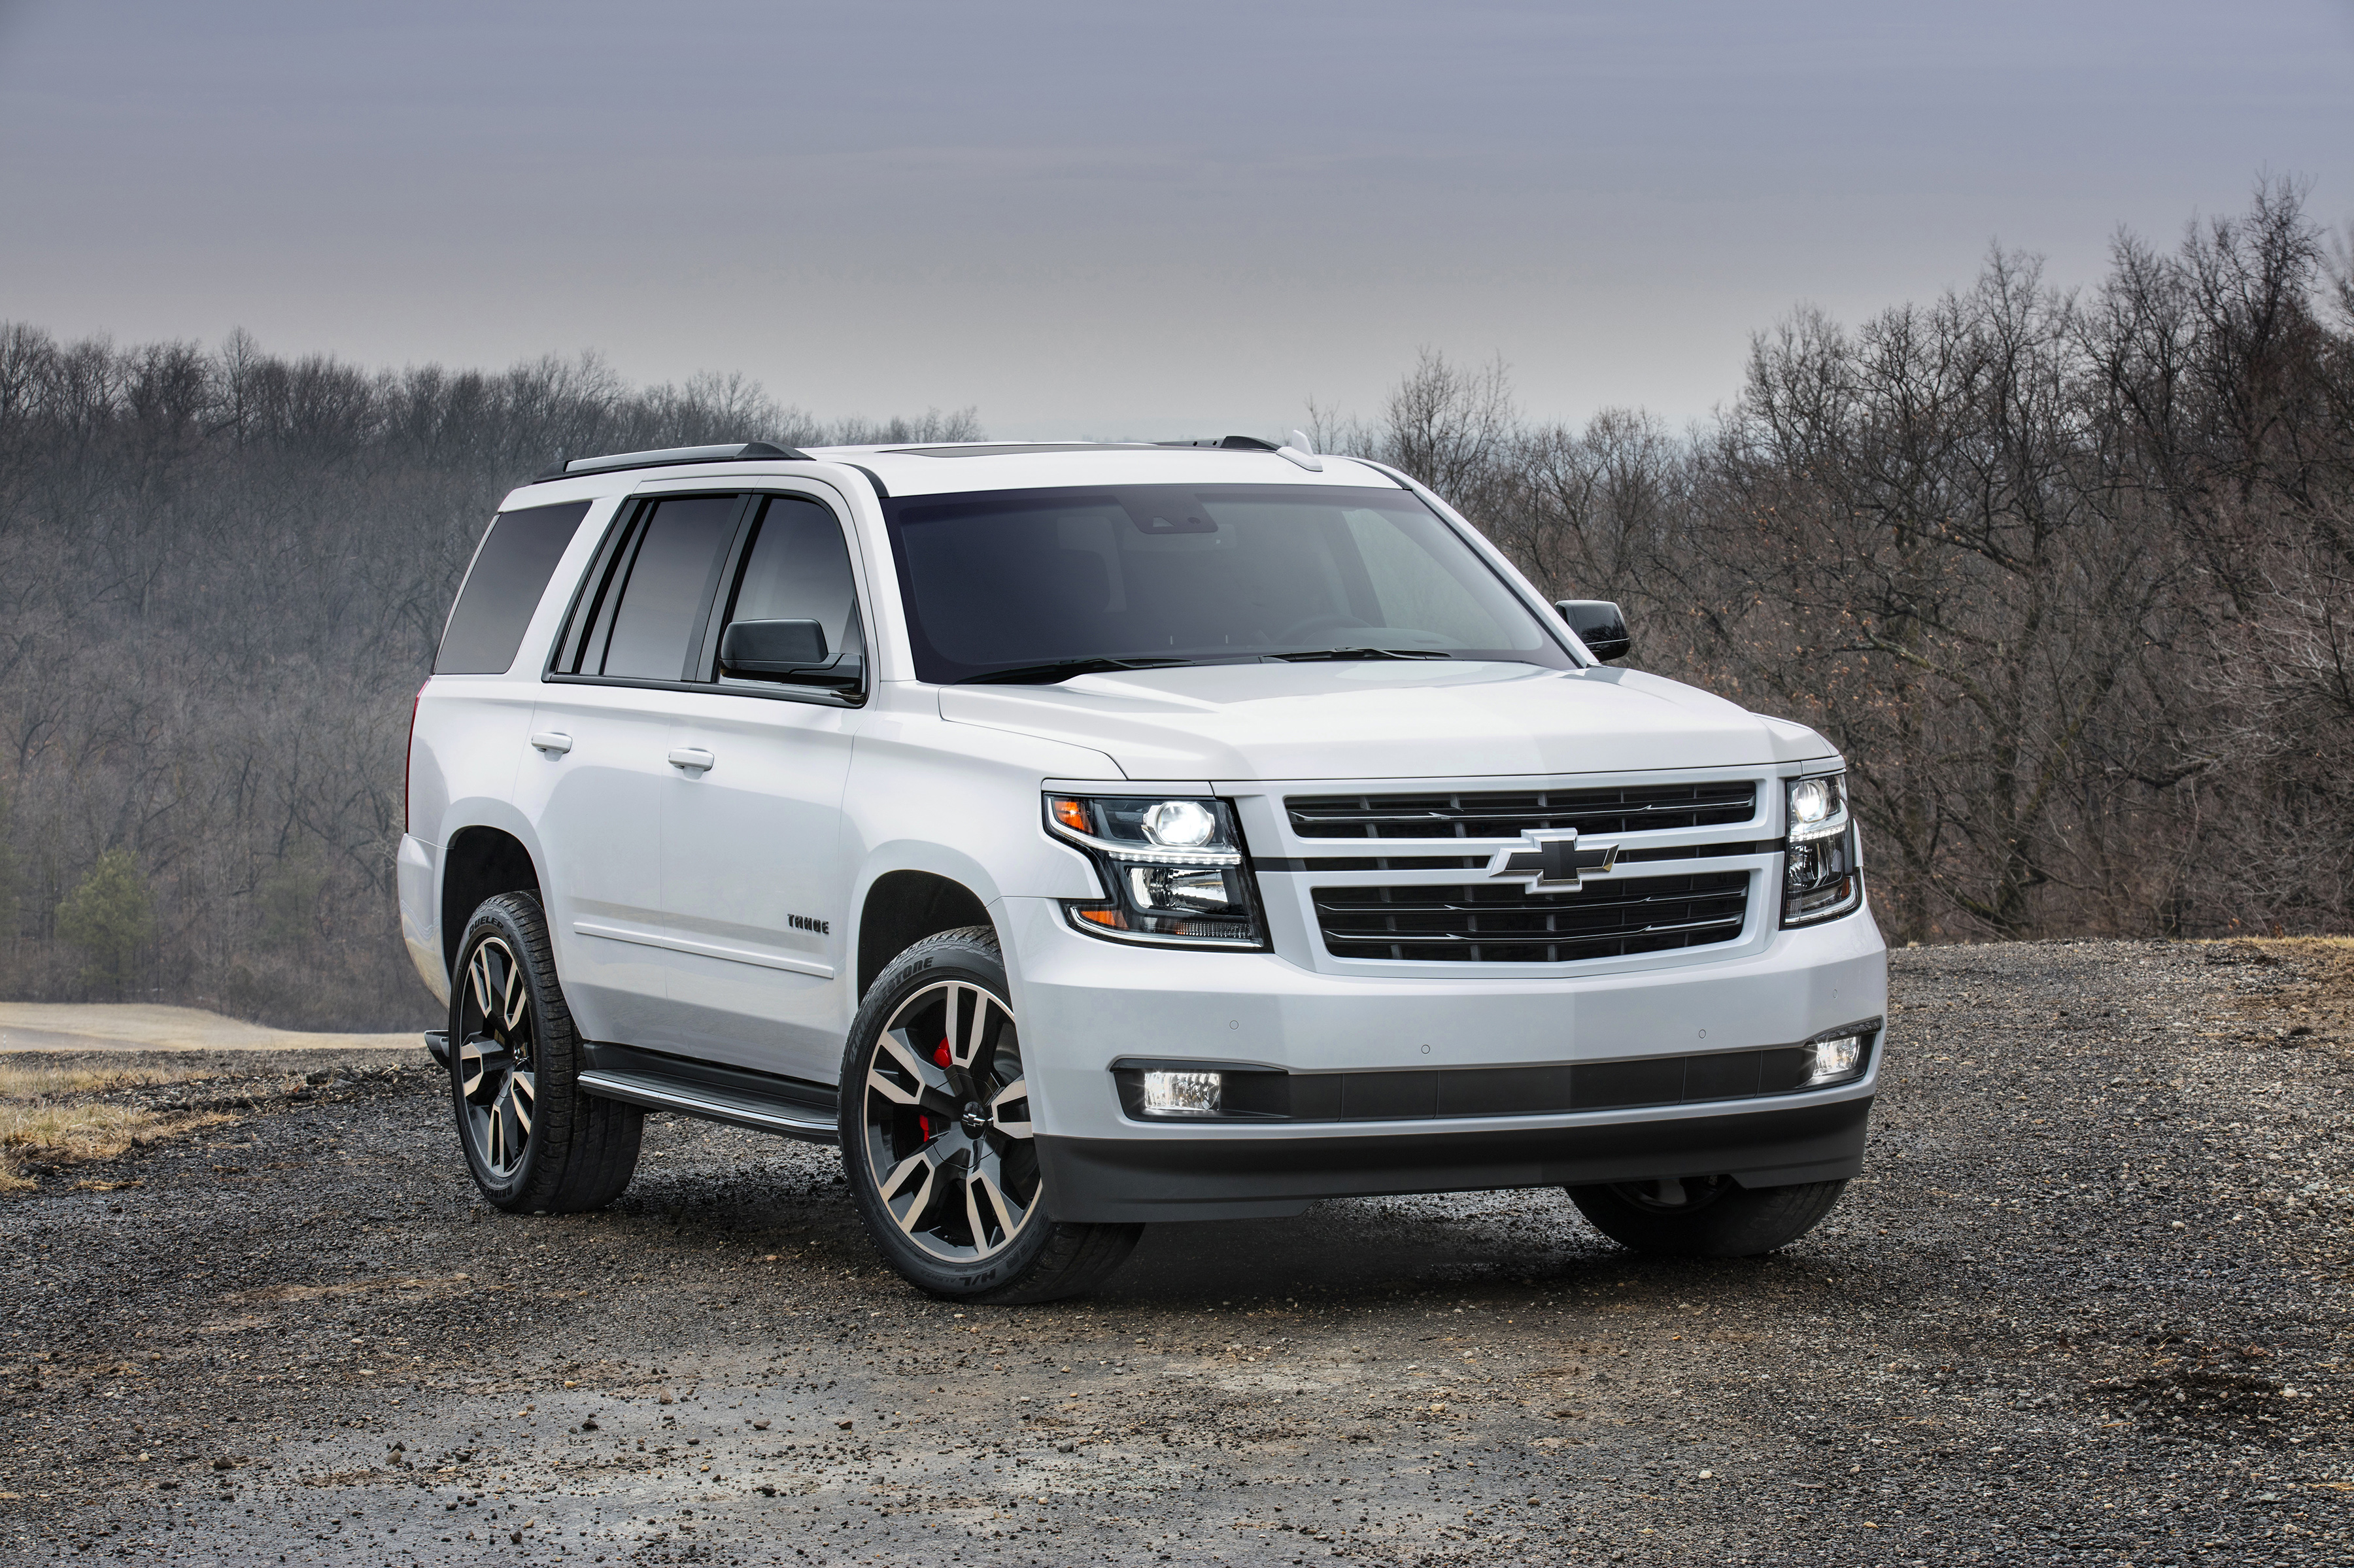 Rst special edition brings street look and power to the new chevrolet tahoe and suburban